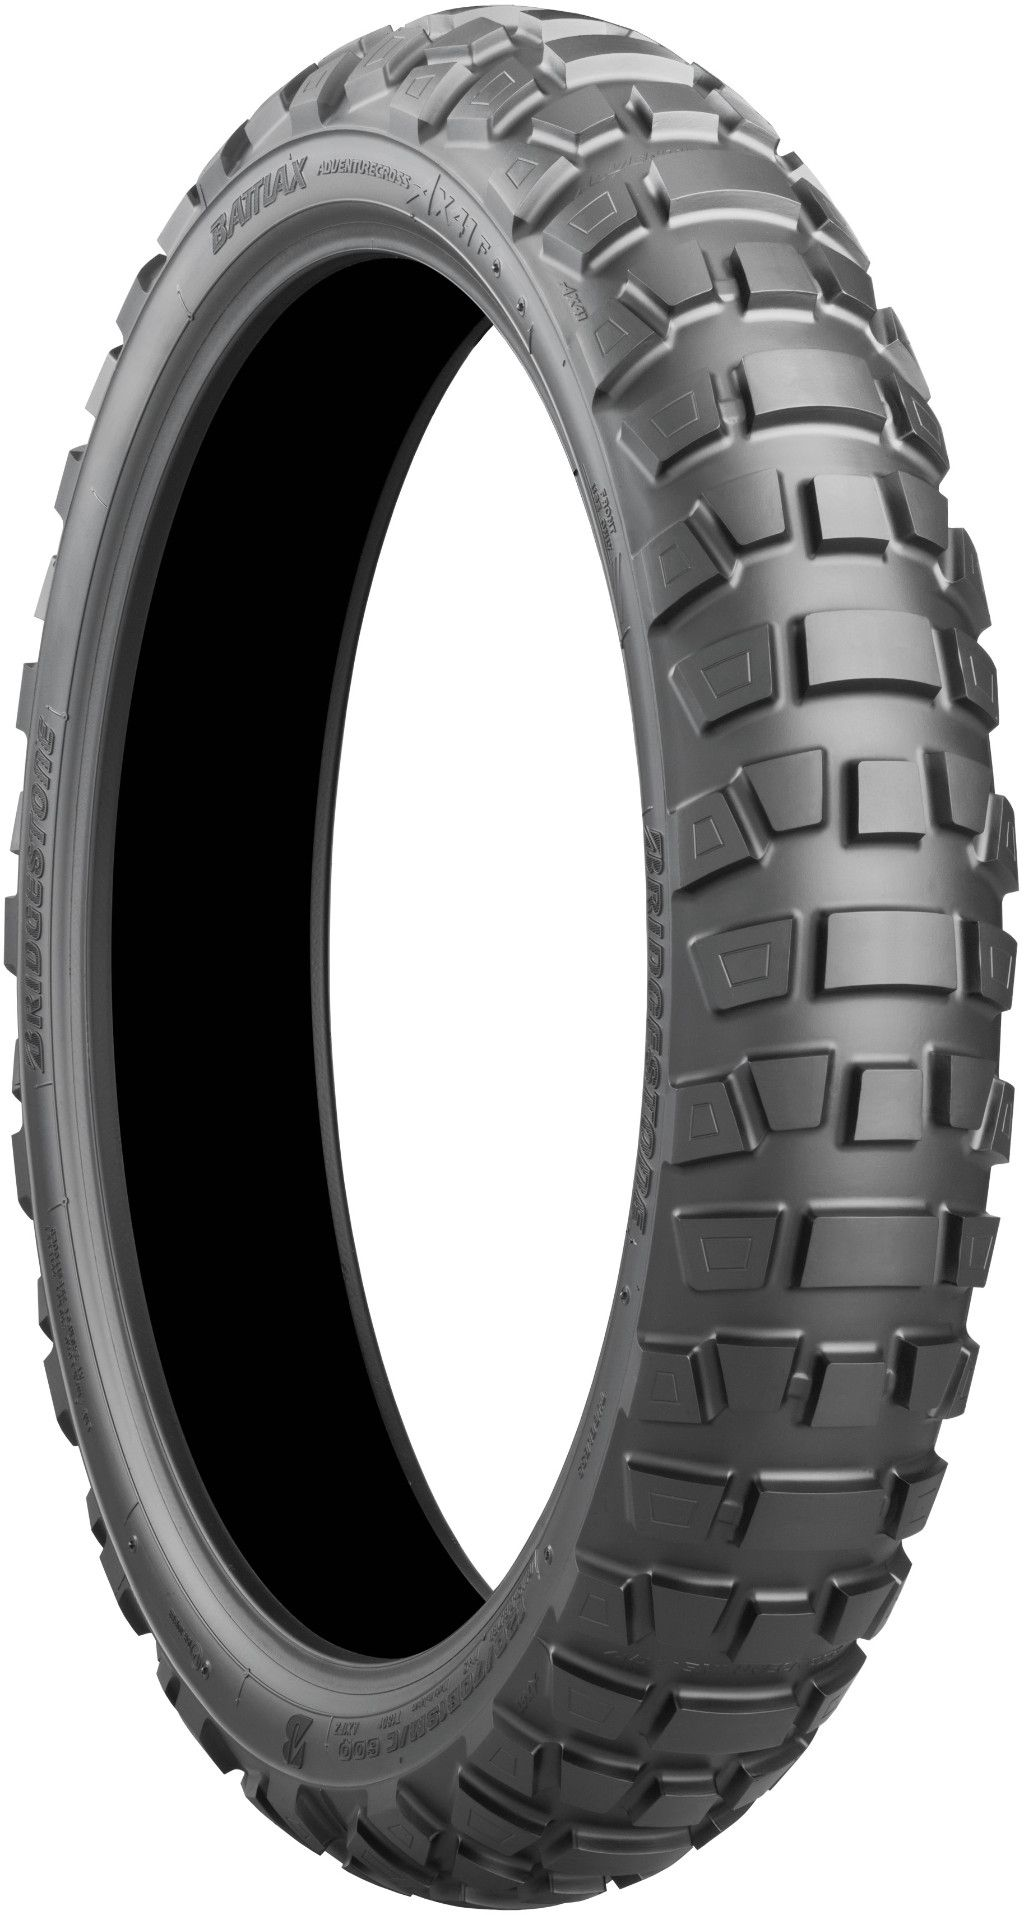 BRIDGESTONE BATTLAX ADVENTURECROSS AX41 [110 / 80B 19M / C 59Q] BATTLAX Adve